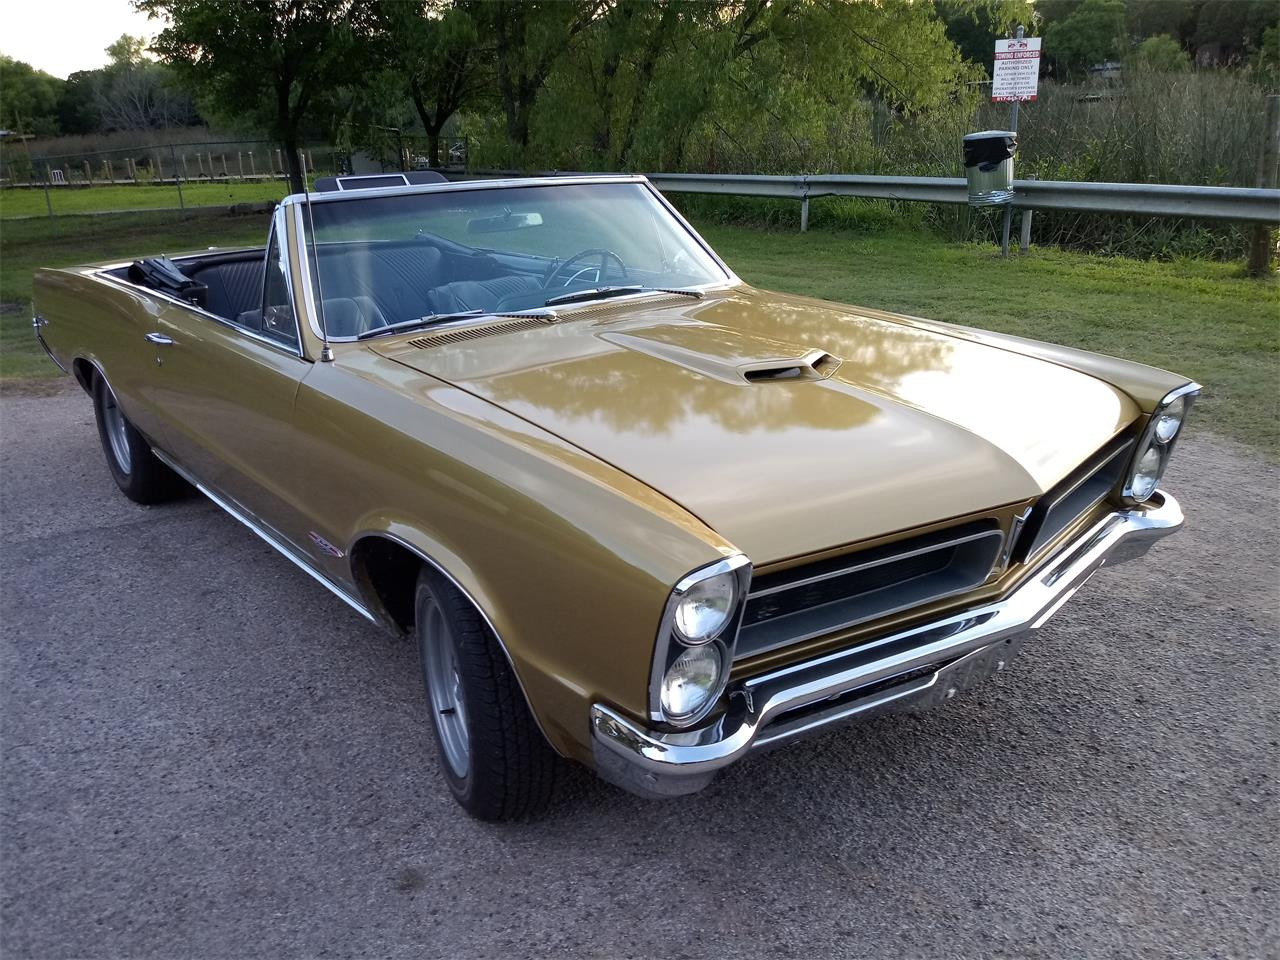 Large Picture of Classic '65 GTO - $49,900.00 Offered by a Private Seller - QC61